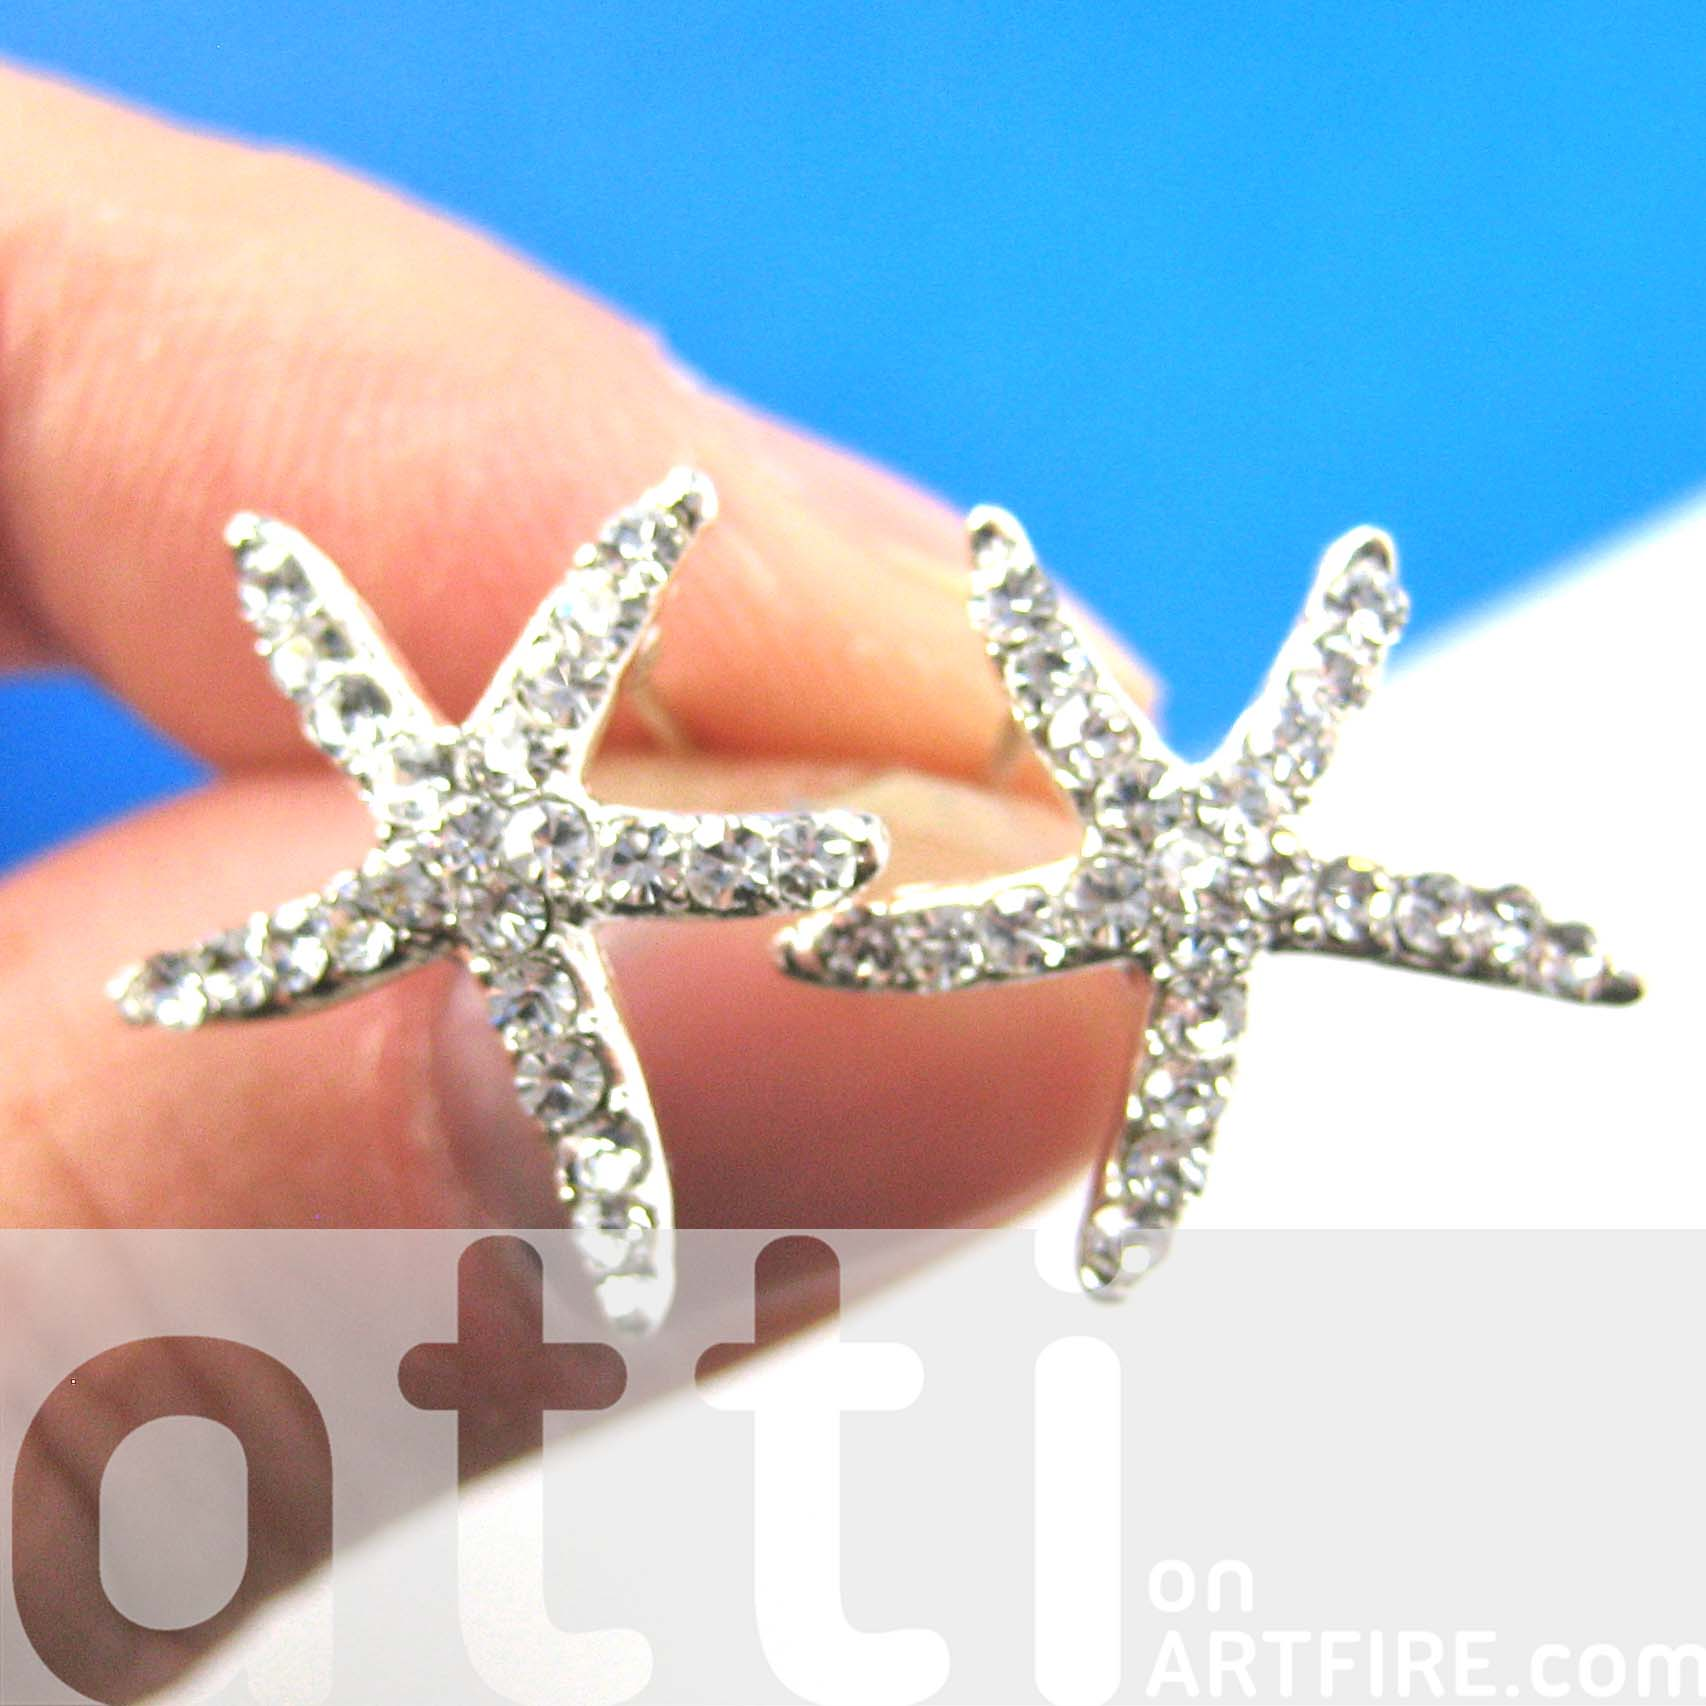 stud at main starfish soul johnlewis thomas cubic silver jewellery rsp glam pdp buythomas zirconia sabo earrings online